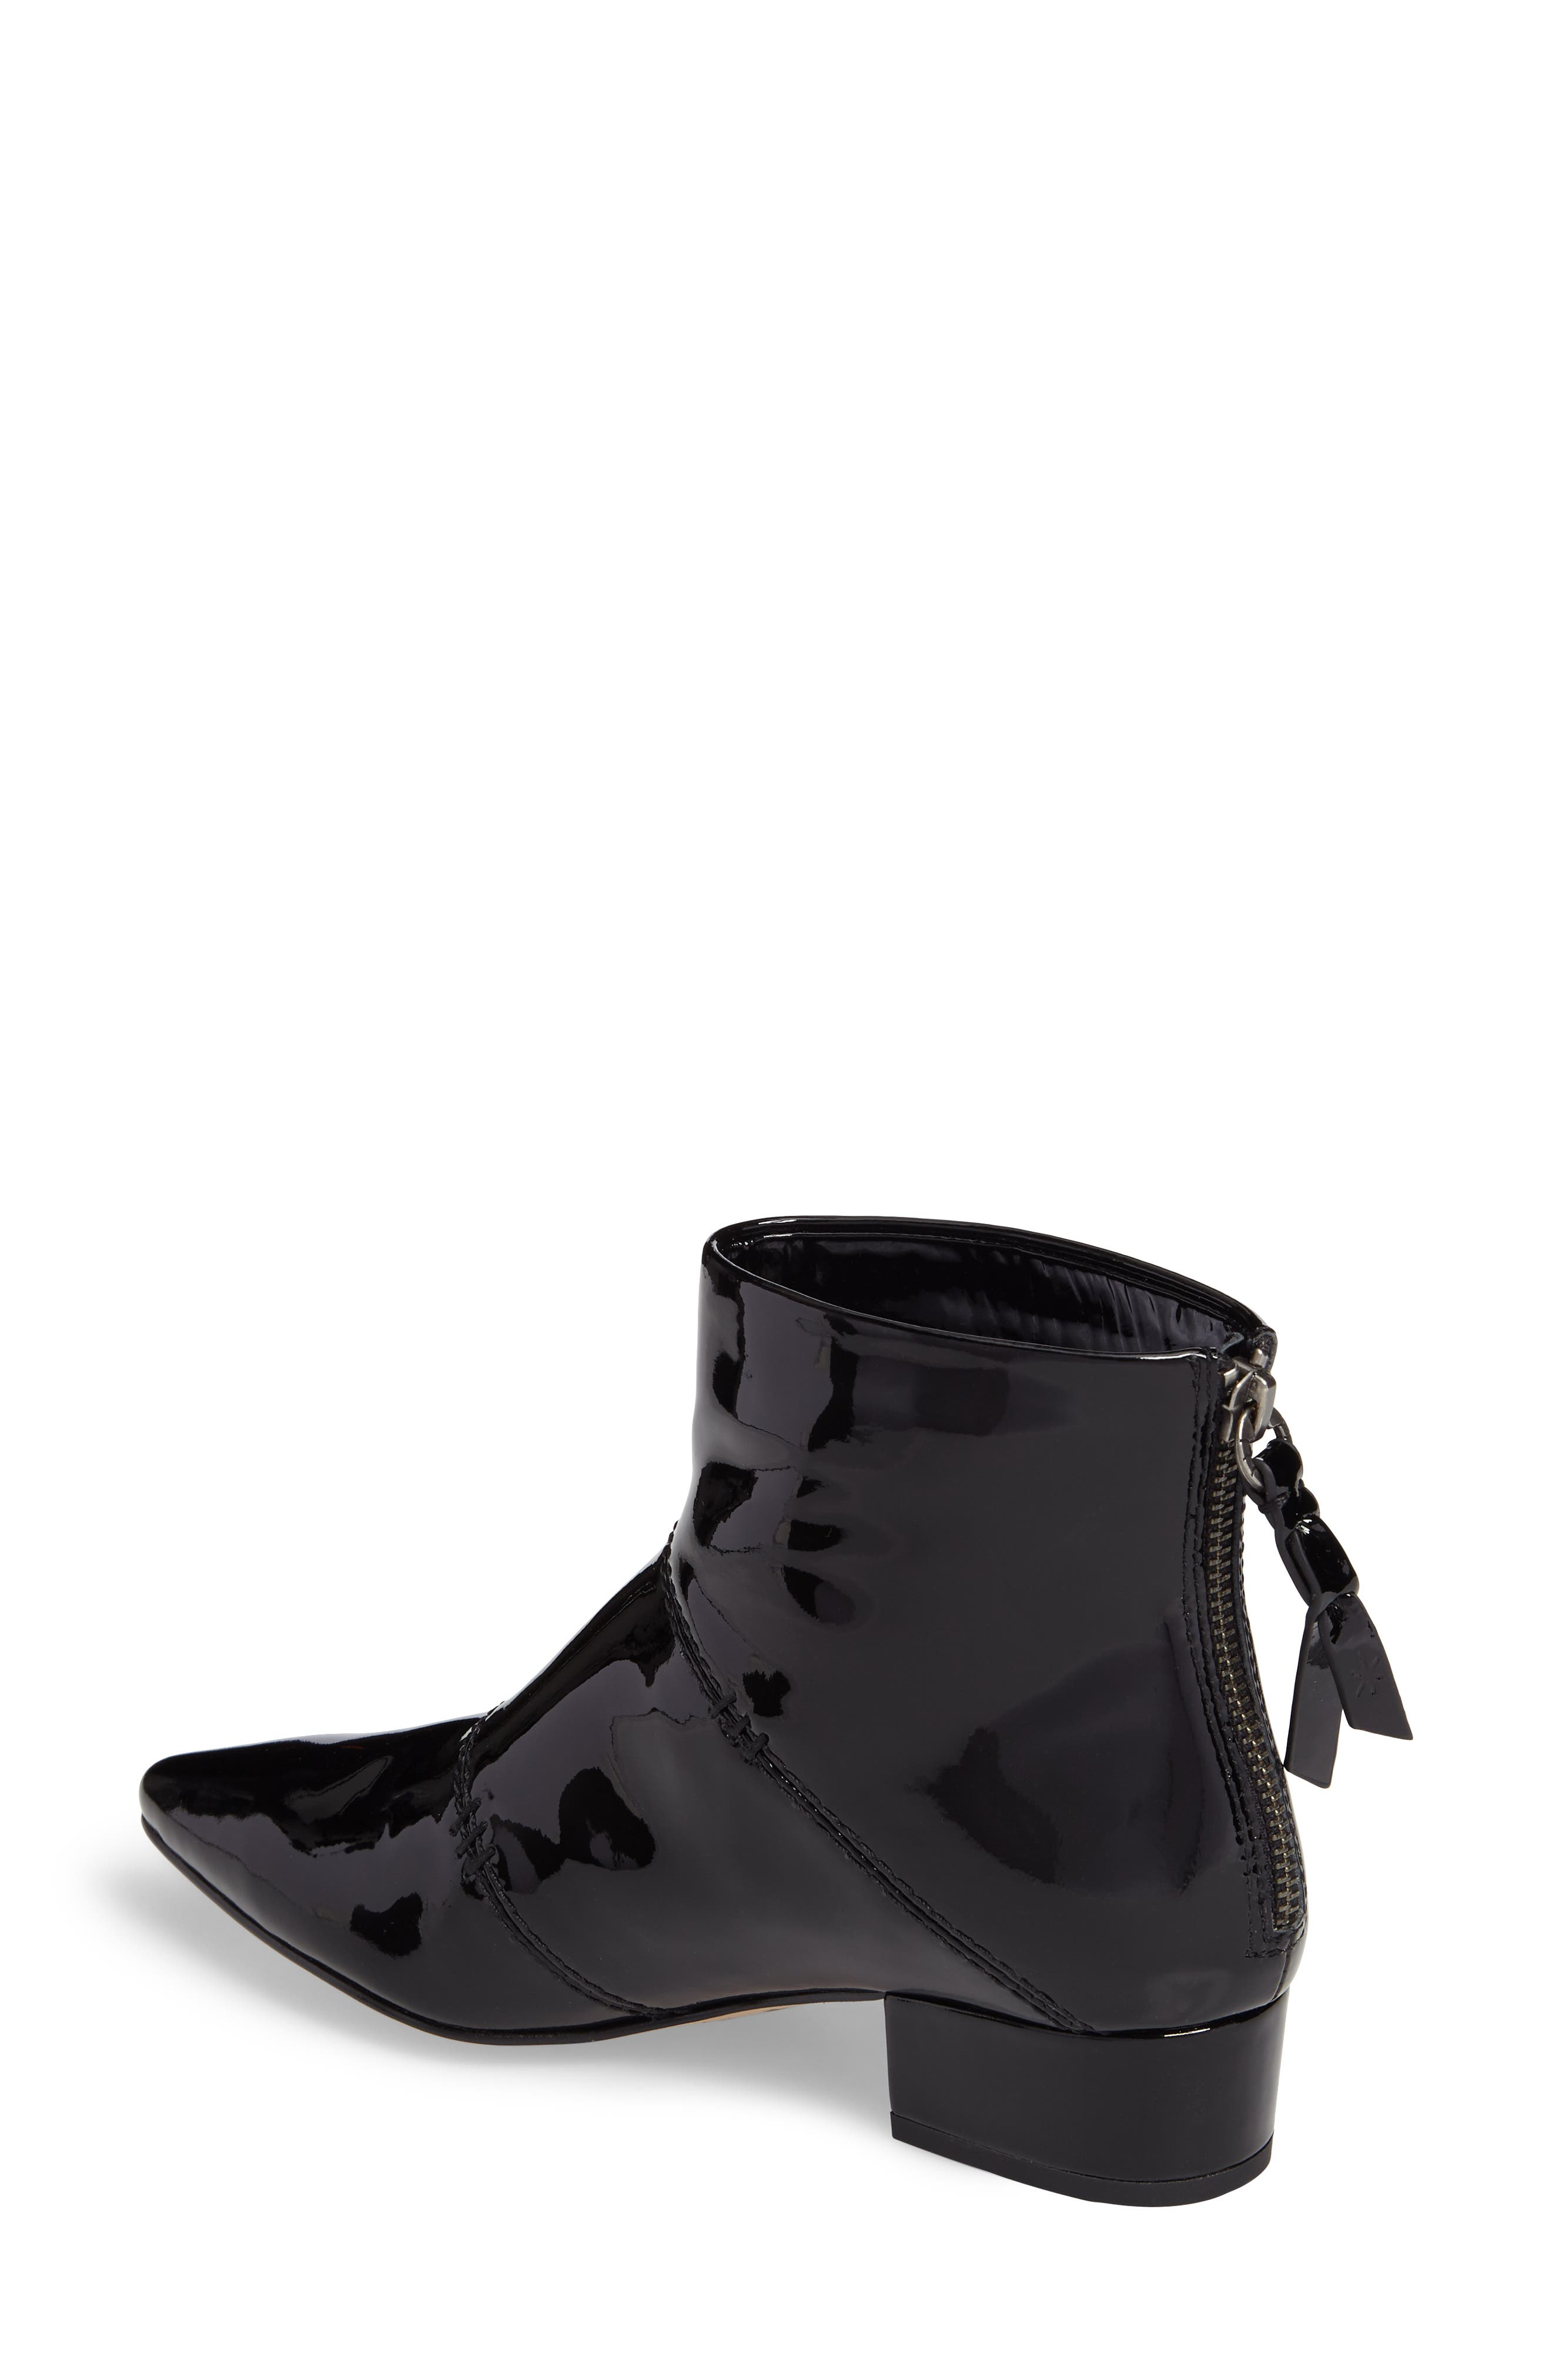 Rina Bootie,                             Alternate thumbnail 2, color,                             Black Patent